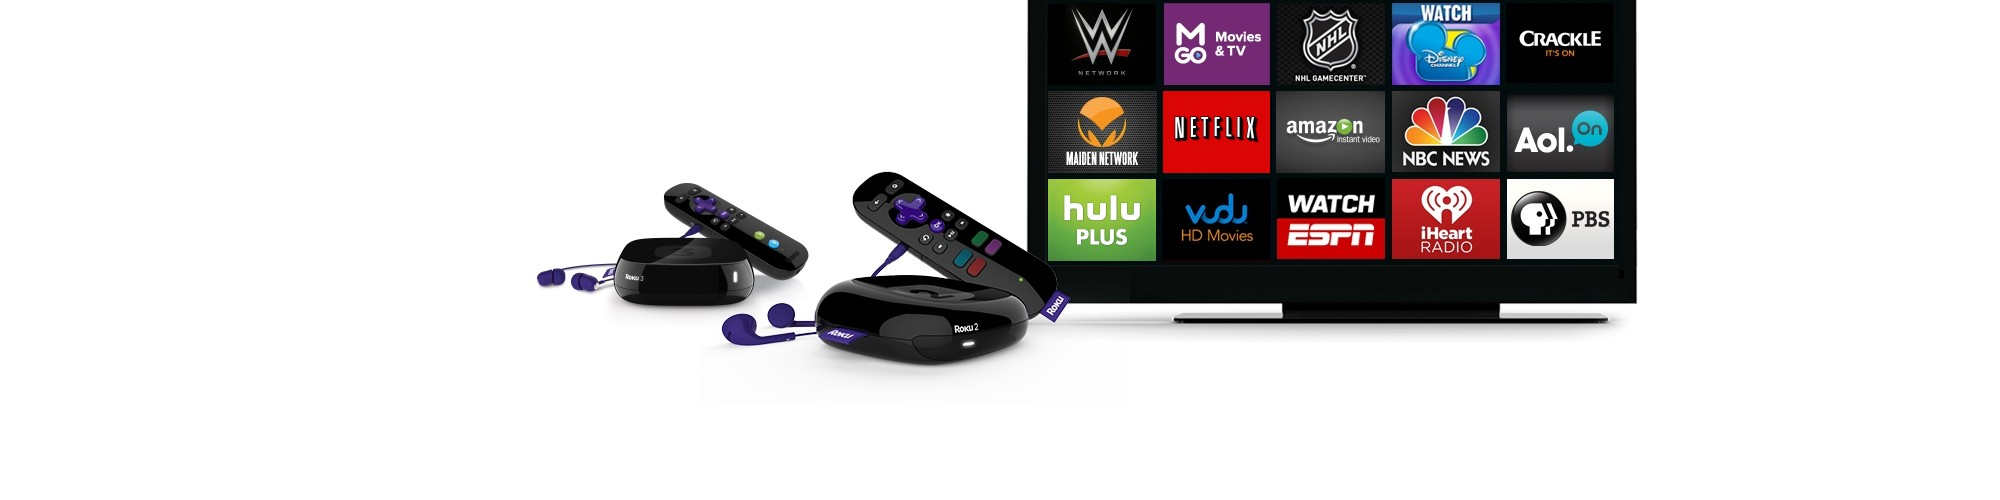 how to watch mlb network on roku